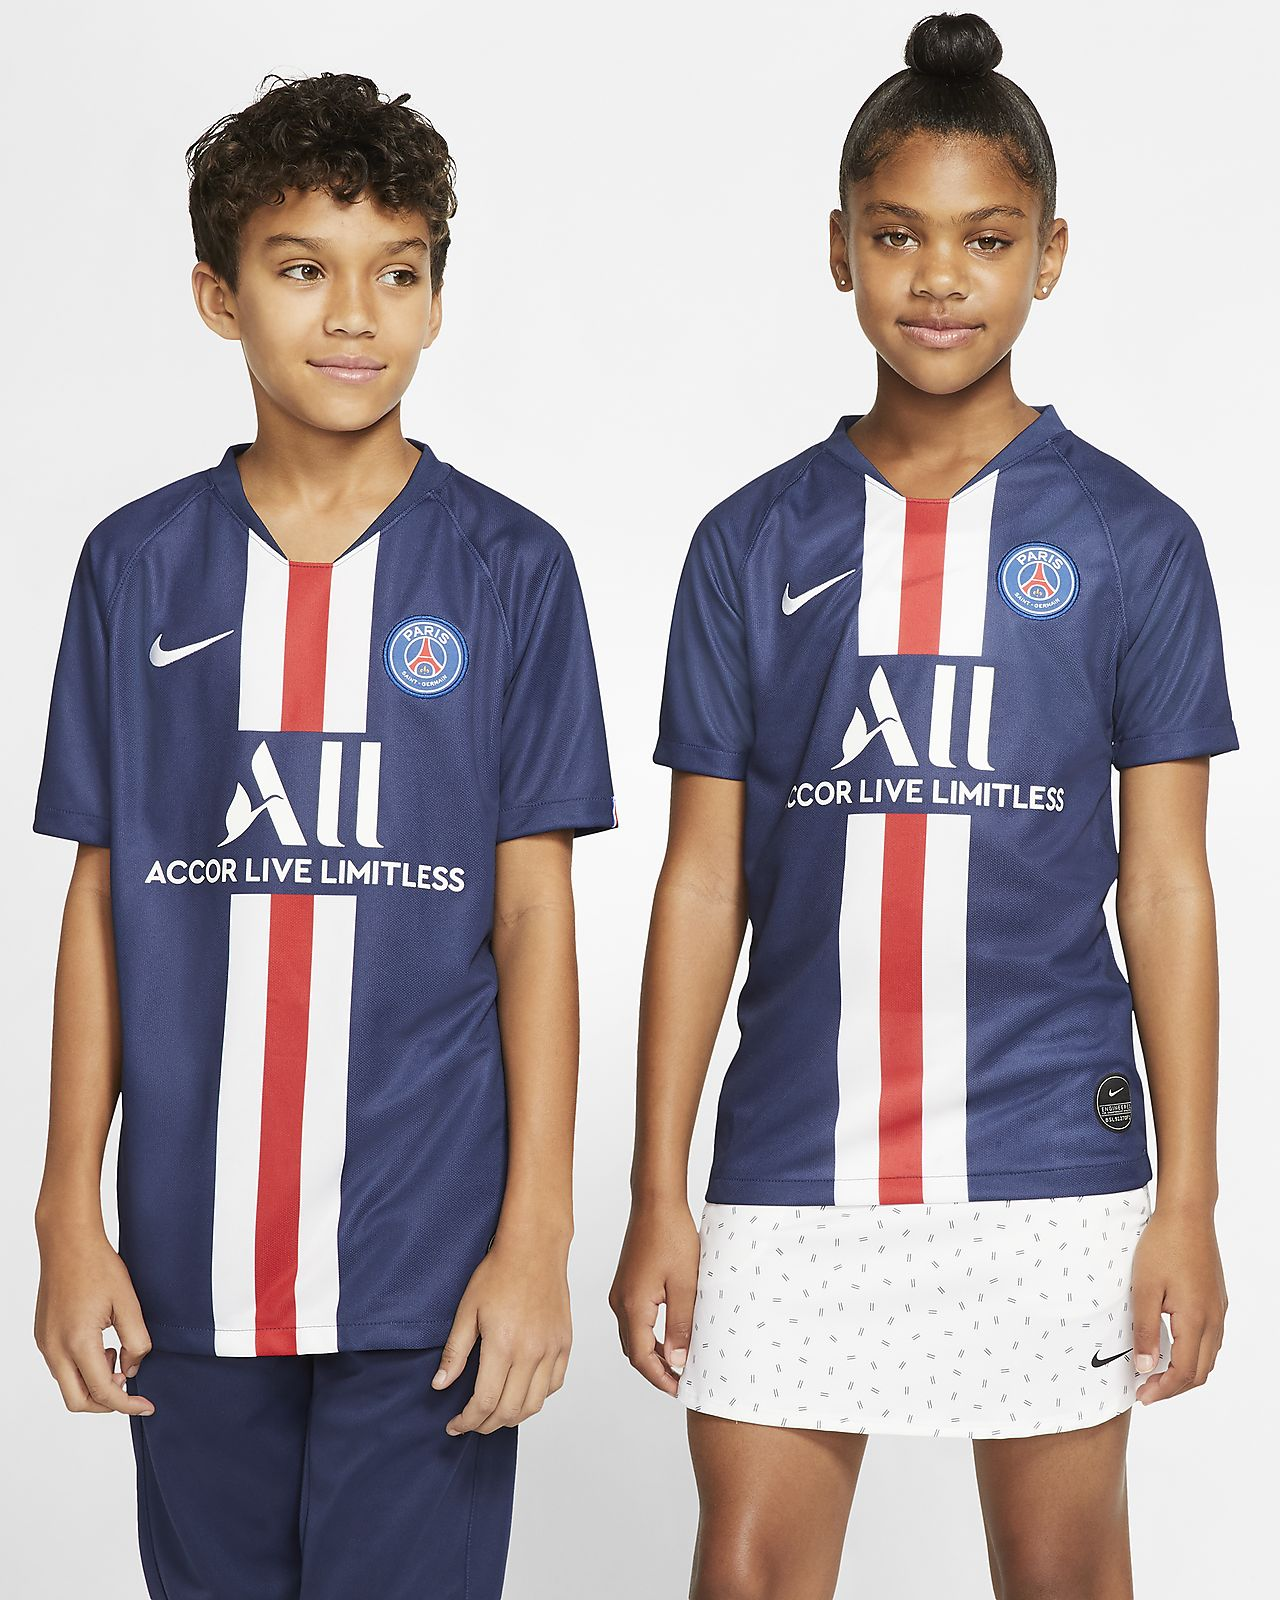 Camiseta de fútbol de local para niño talla grande Stadium del Paris Saint-Germain 2019/20